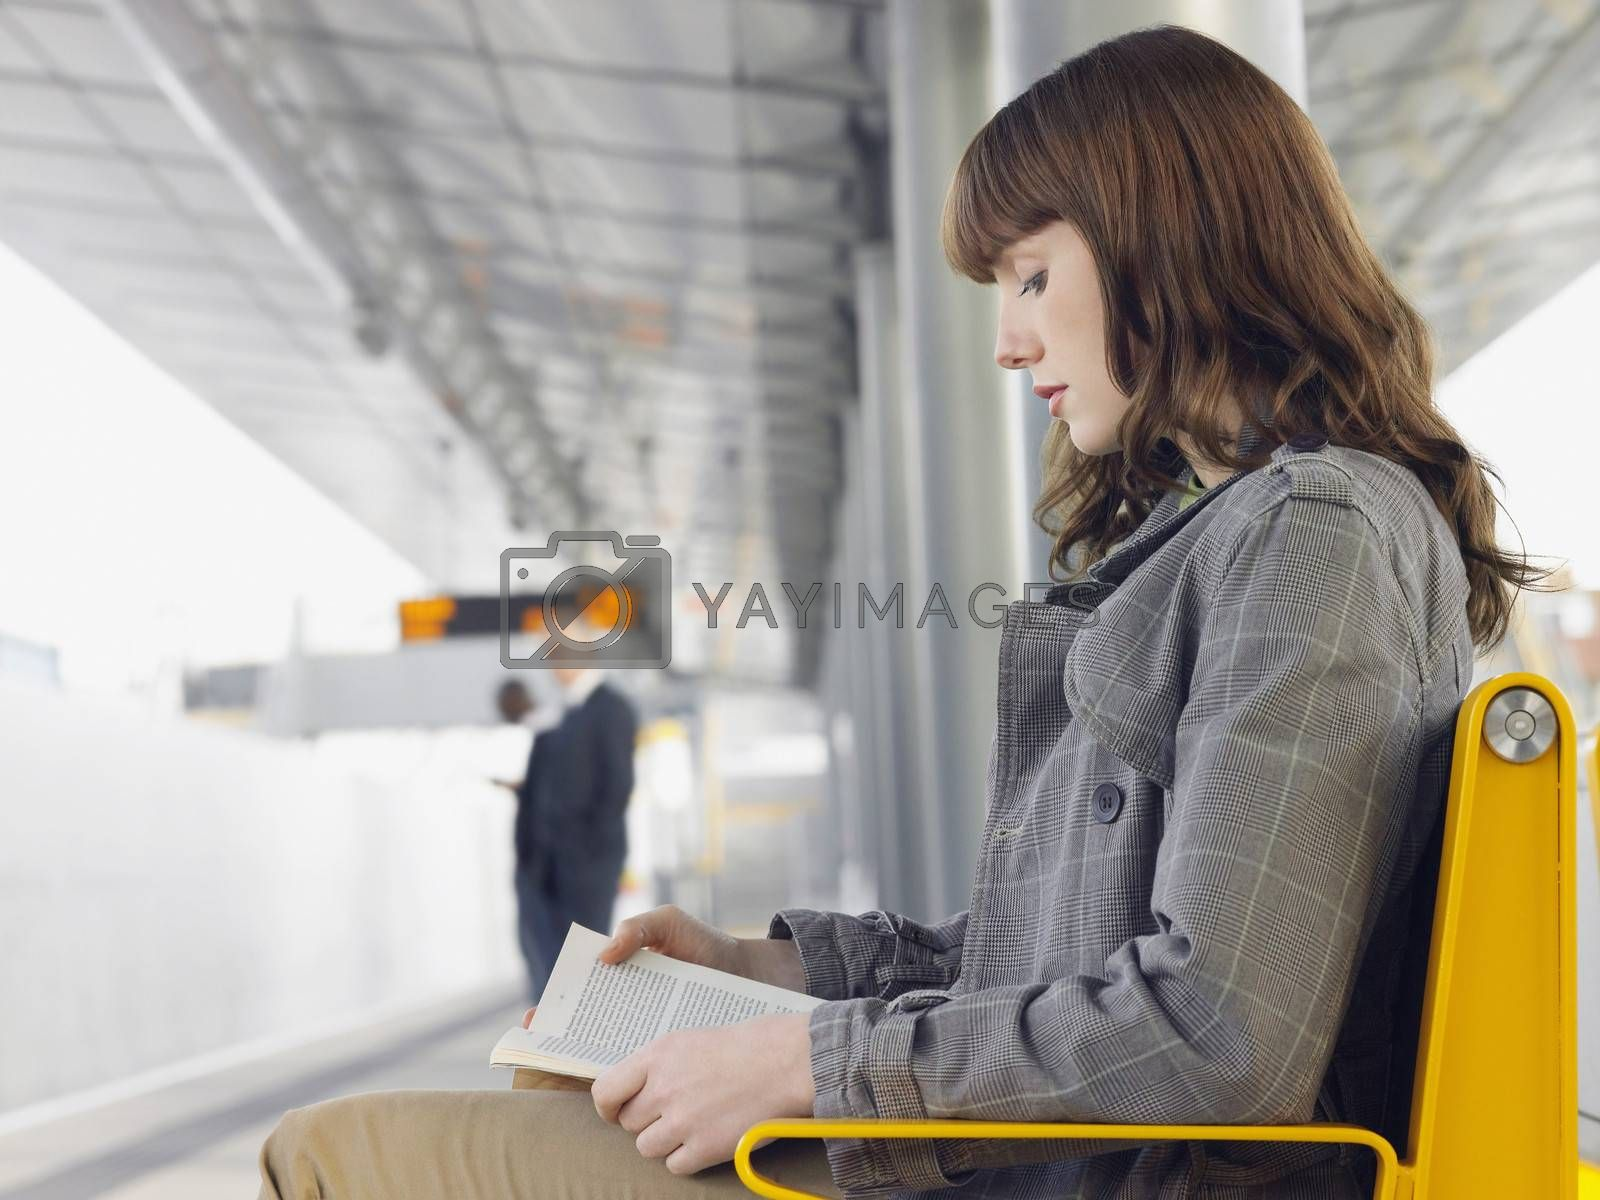 Businesswoman Reading Book At Train Station